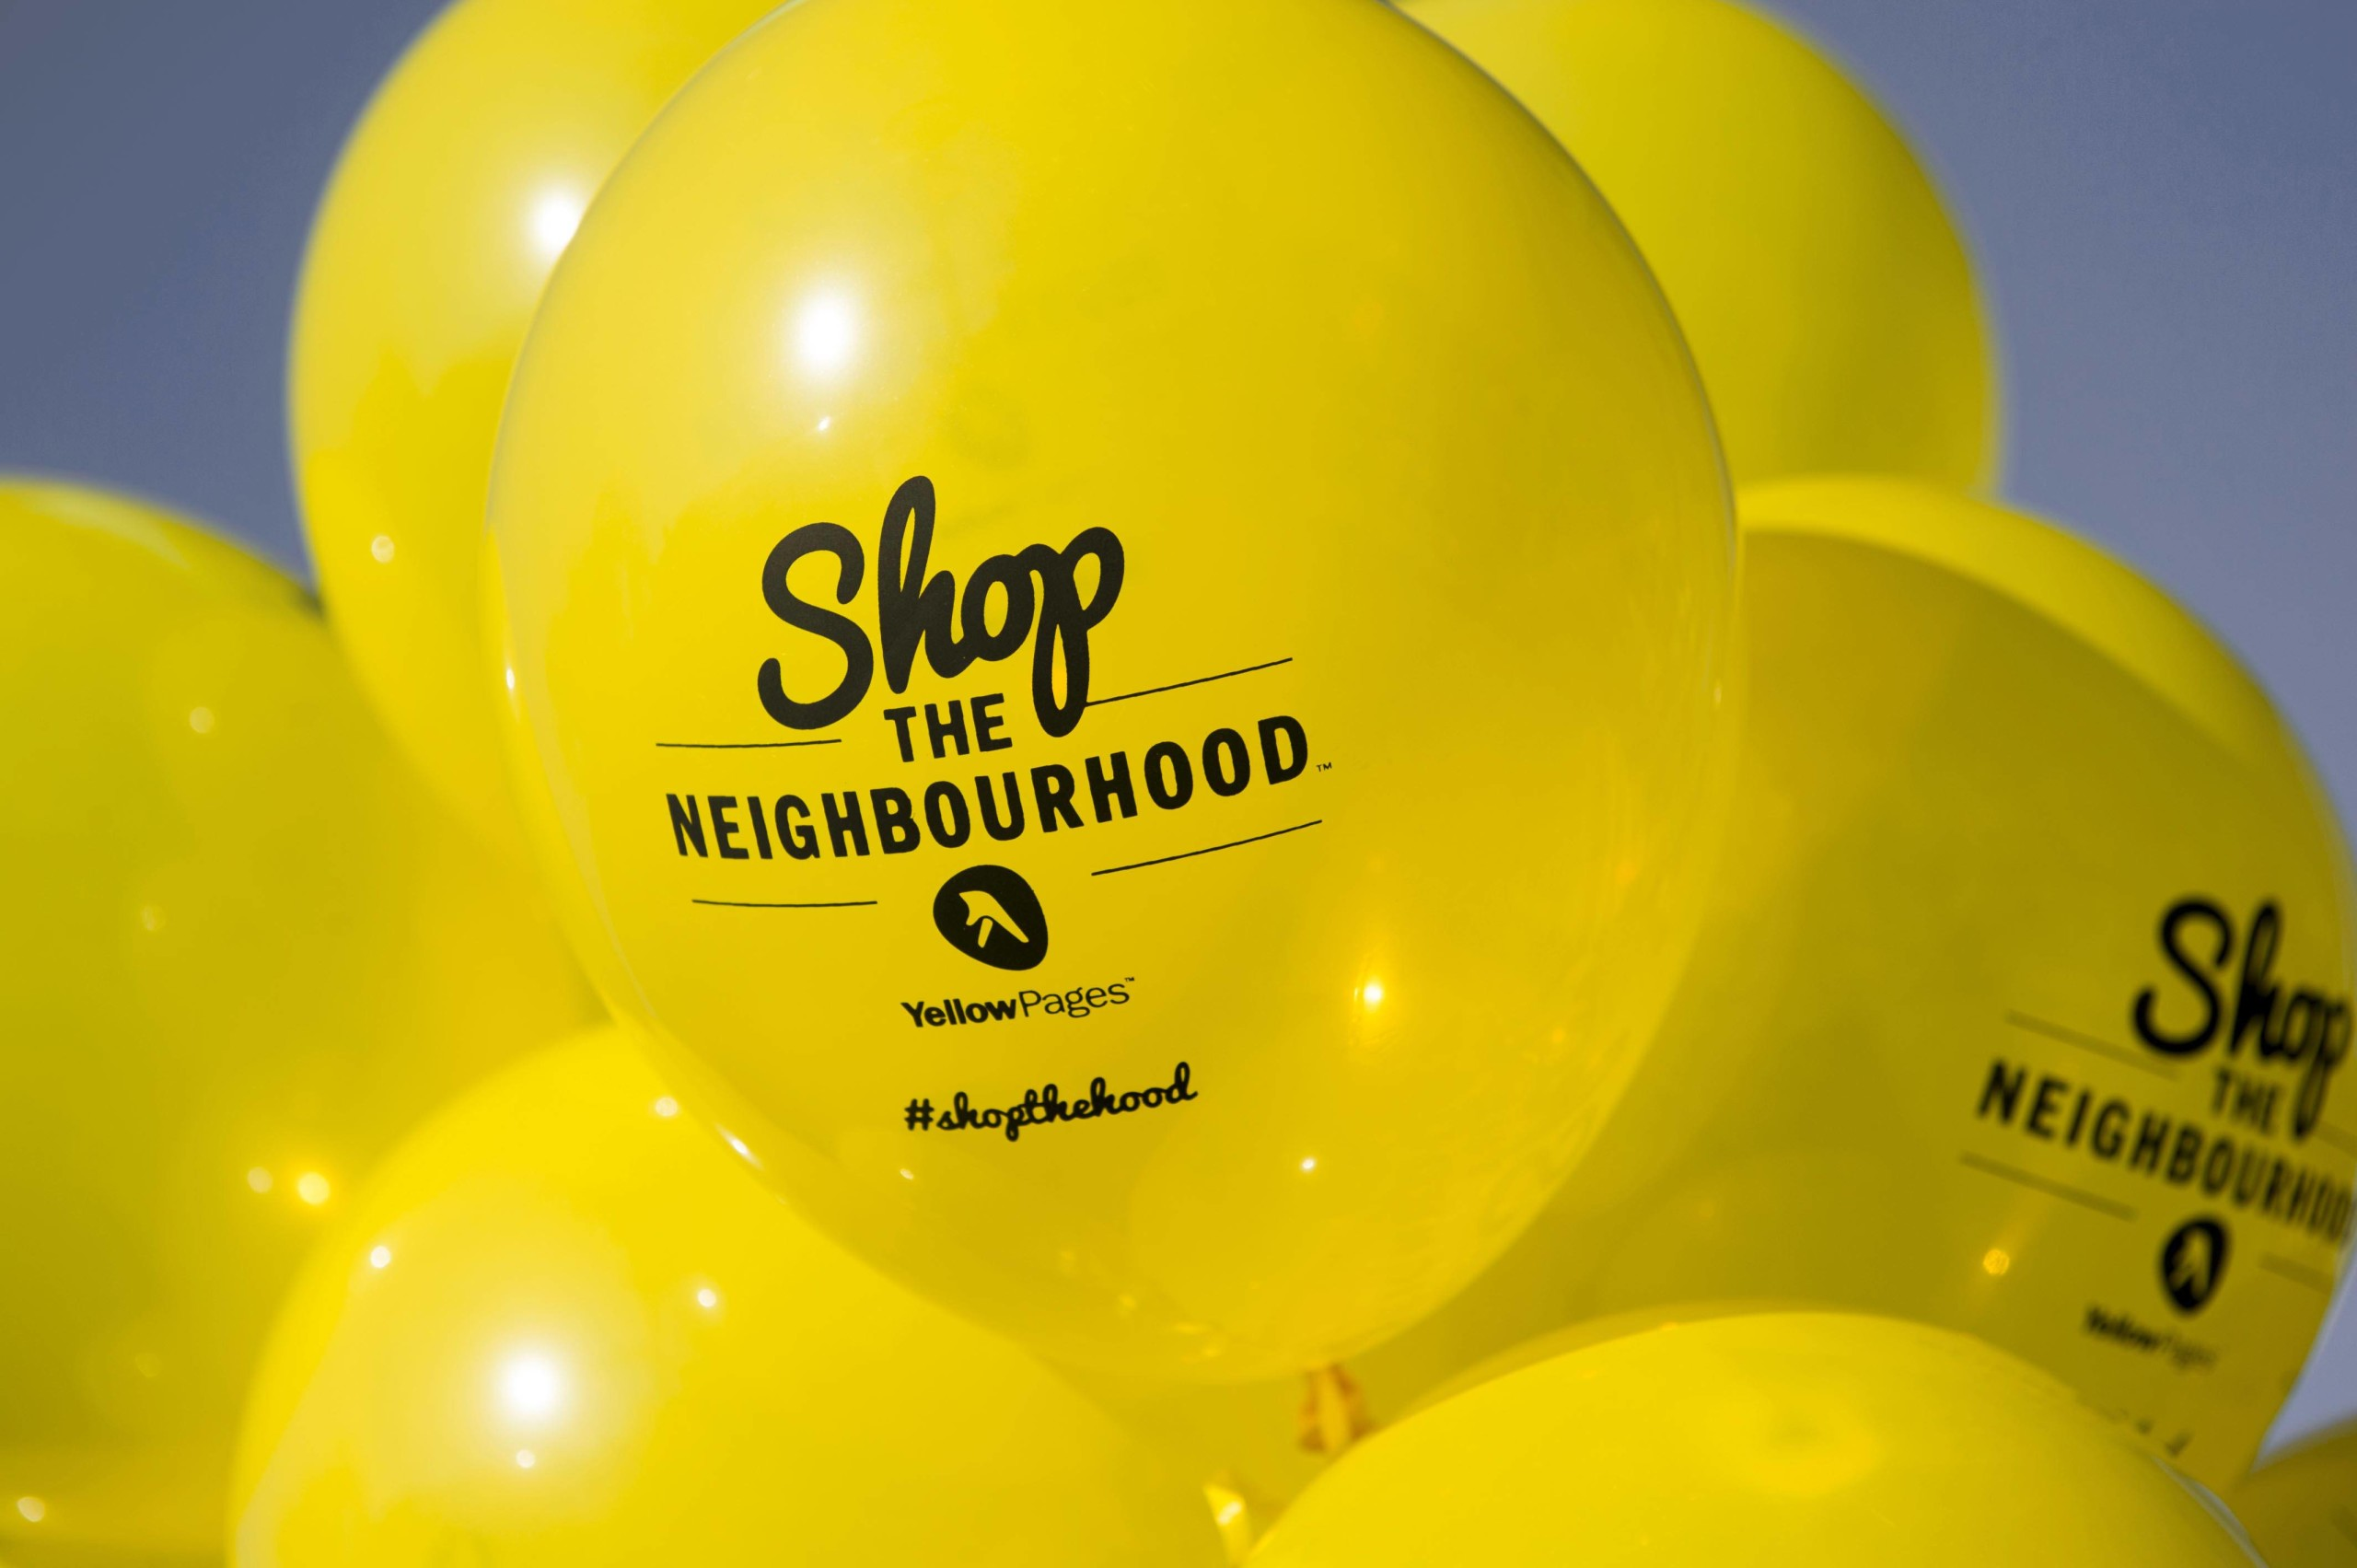 Shop The Neighbourhood